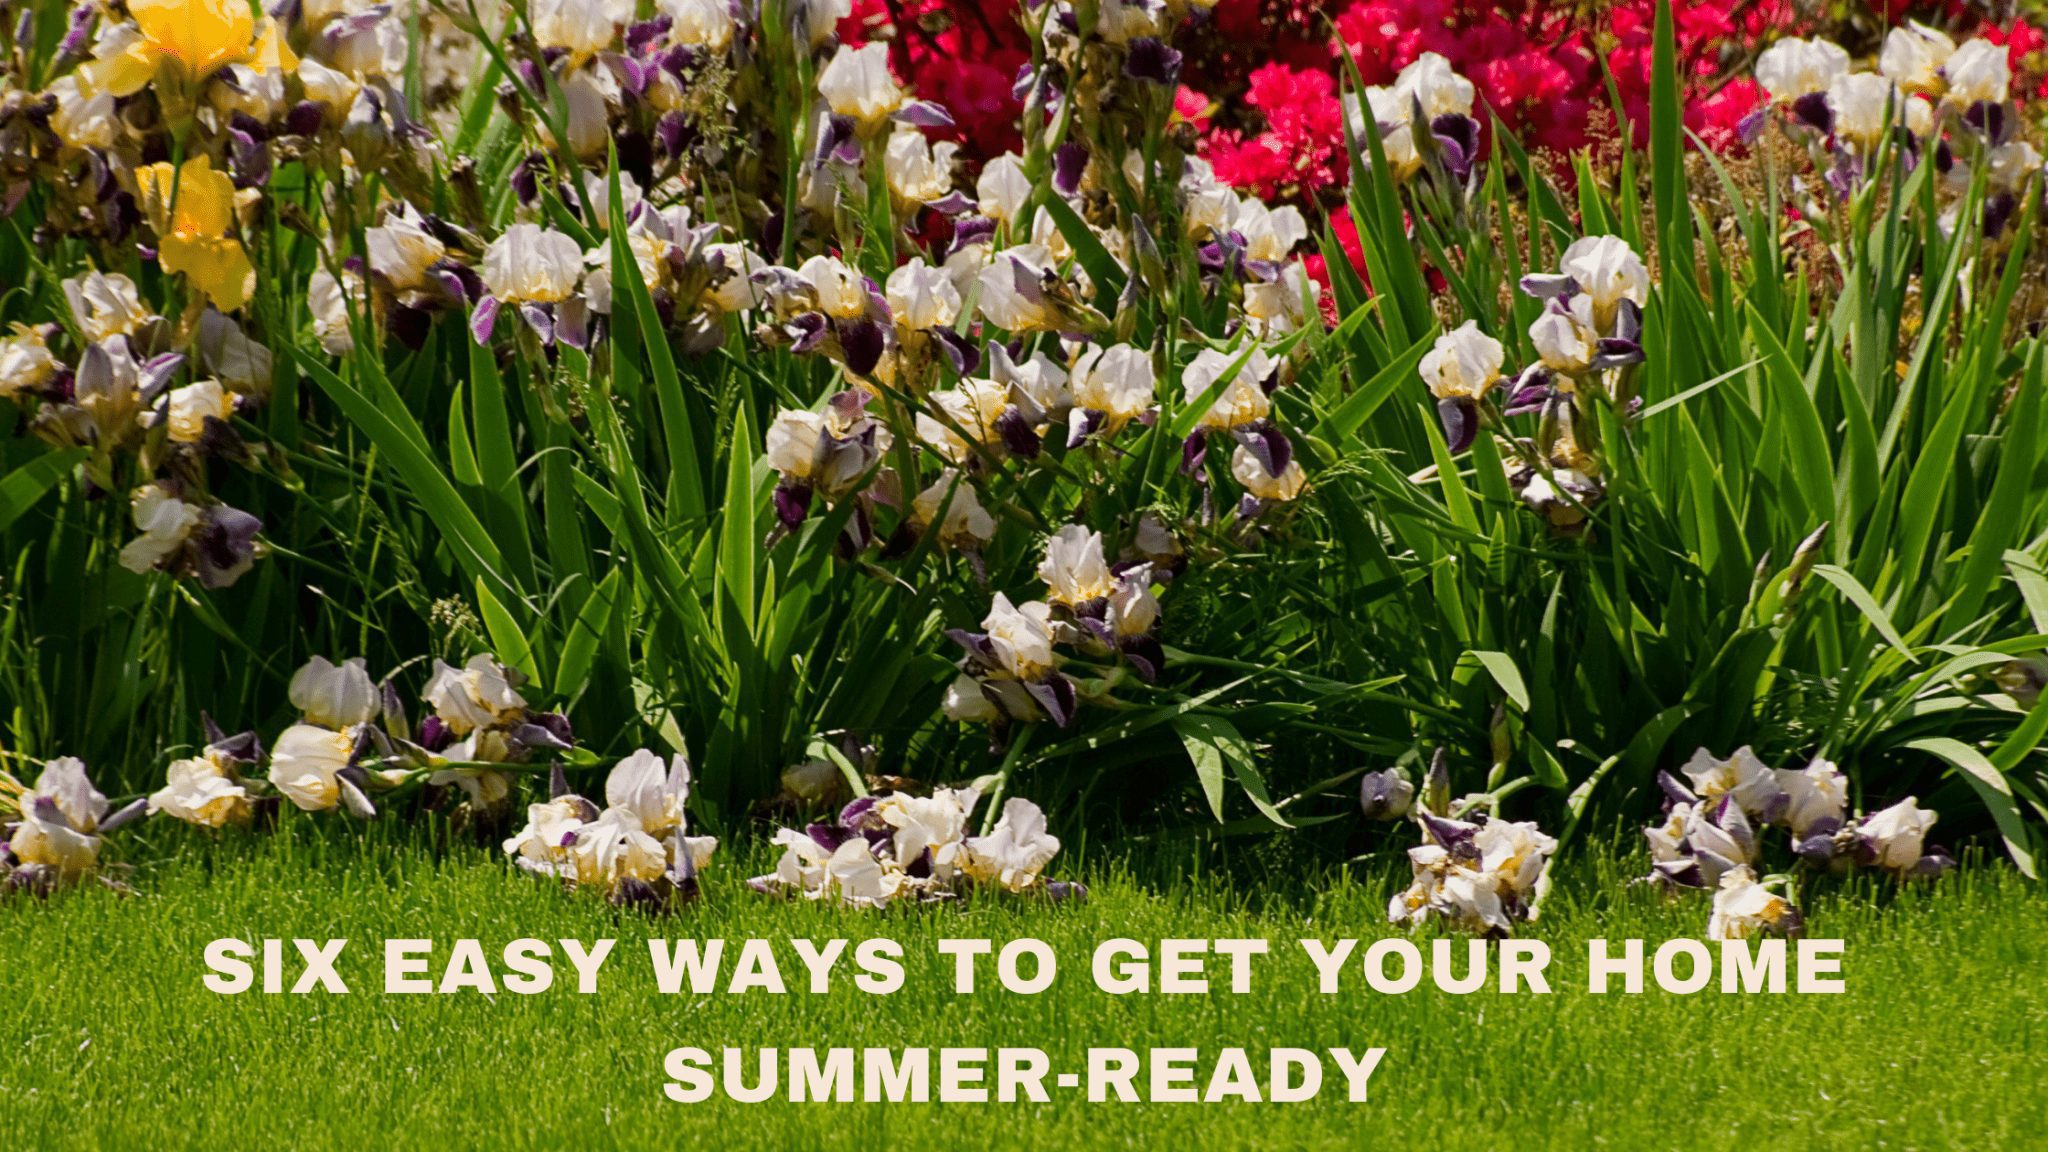 Six Easy Ways to Get Your Home Summer-Ready